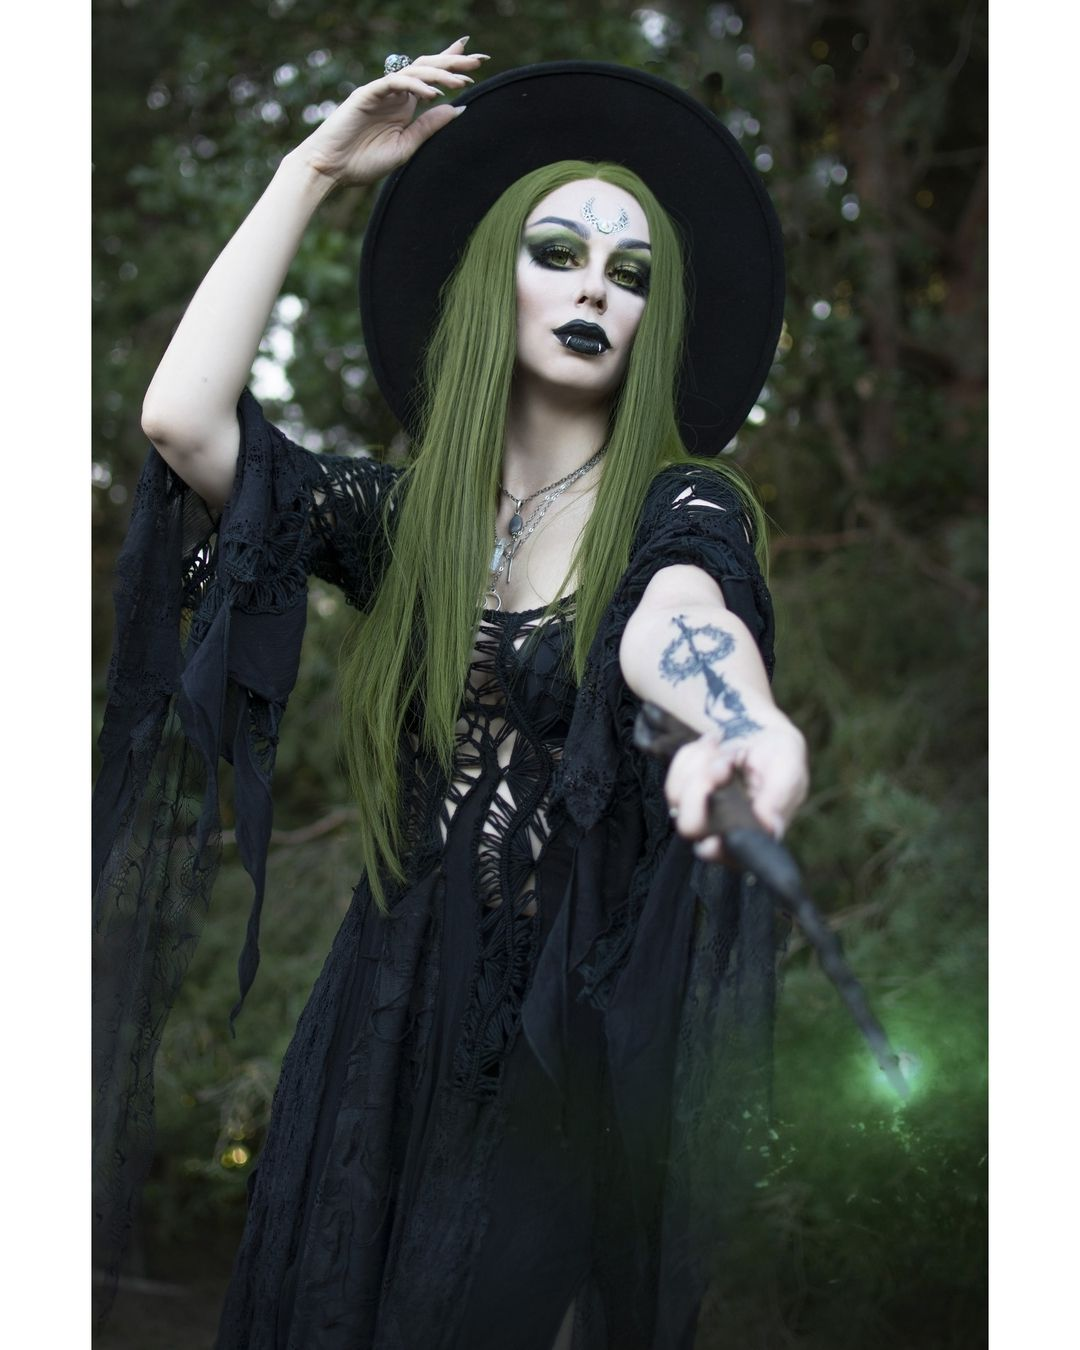 3 151 Likes 62 Comments Katrin Model Designer Katrin Lanfire On Instagram Werbung The Green Witch Model Katrin La Green Wig Witch Fashion Wigs